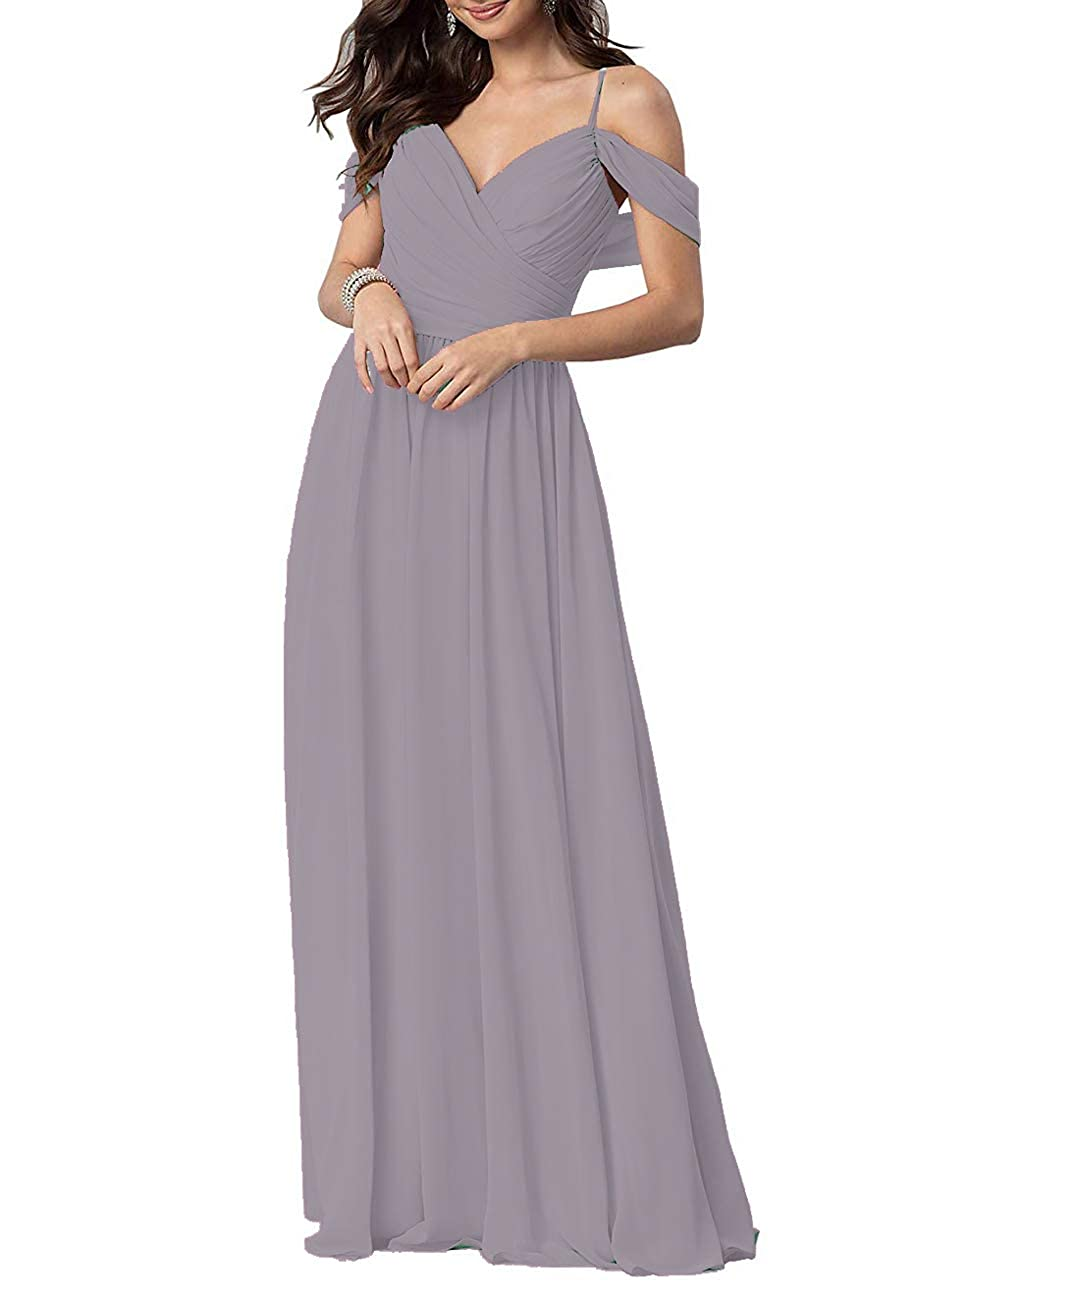 Cameo Long Prom Gown and Evening Dresses for Women OffTheShoulder Bridesmaid Dresses